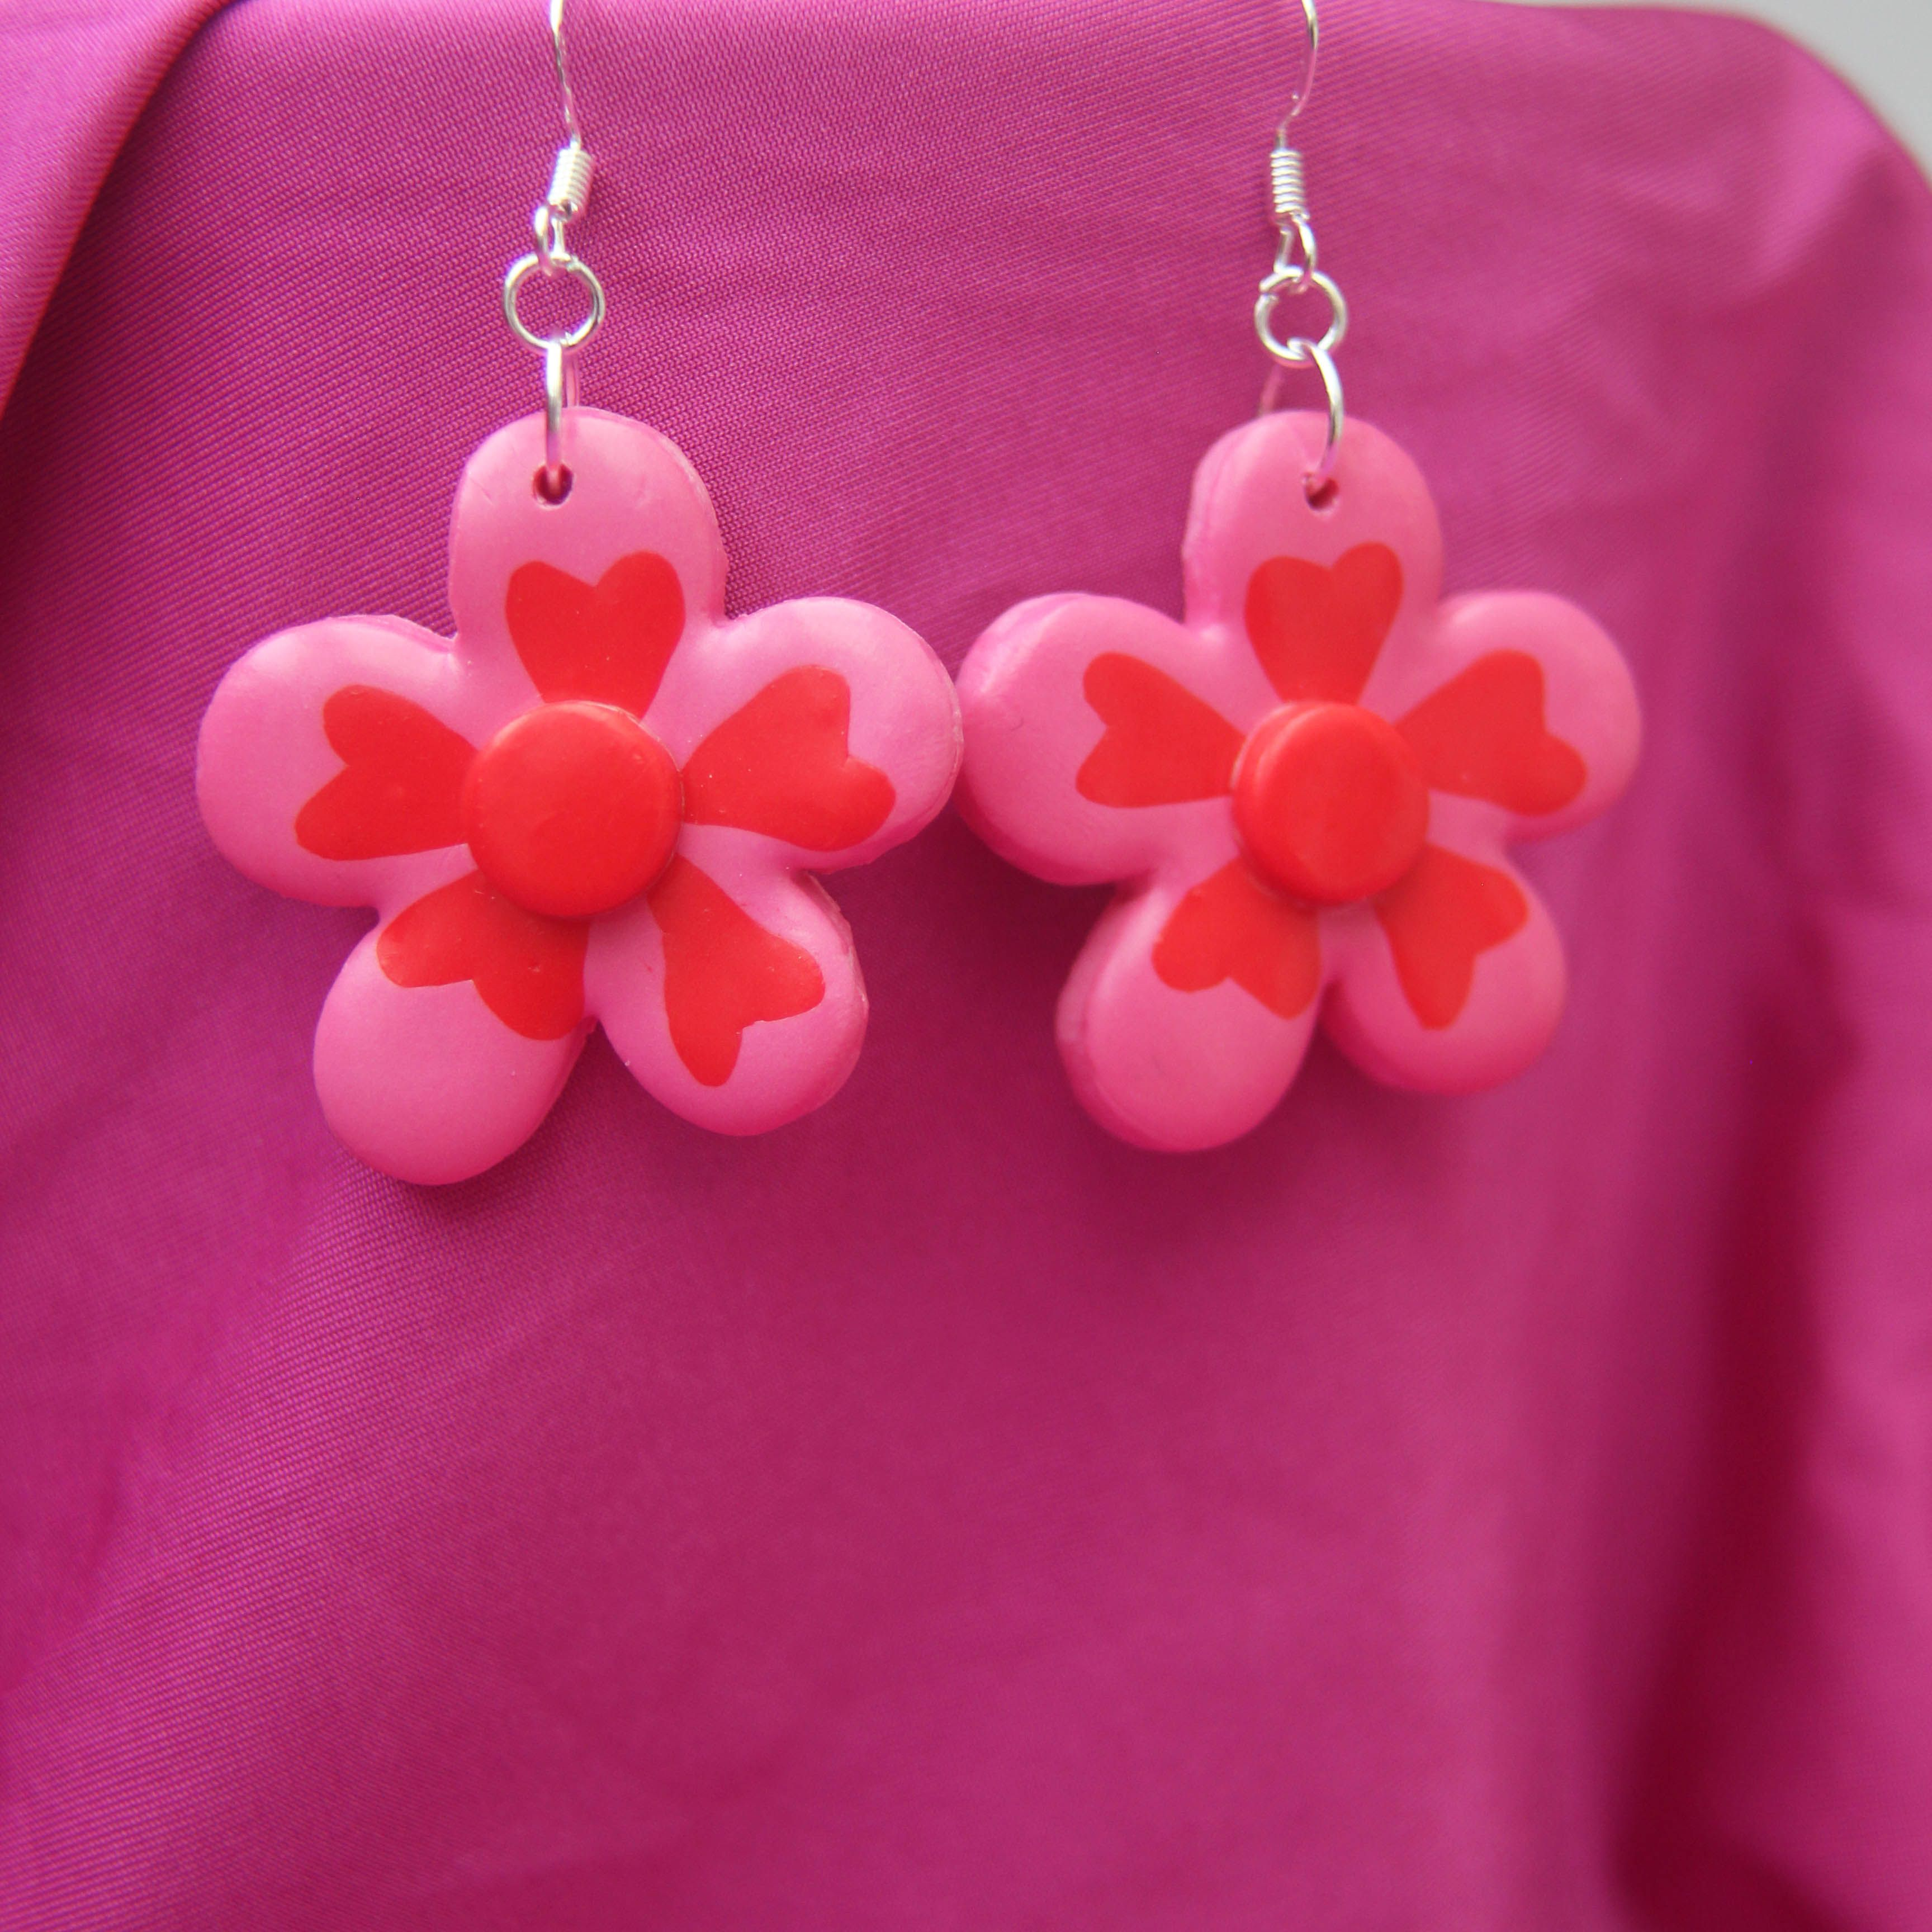 Handmade Flower Earrings - Valentine's Day Collection